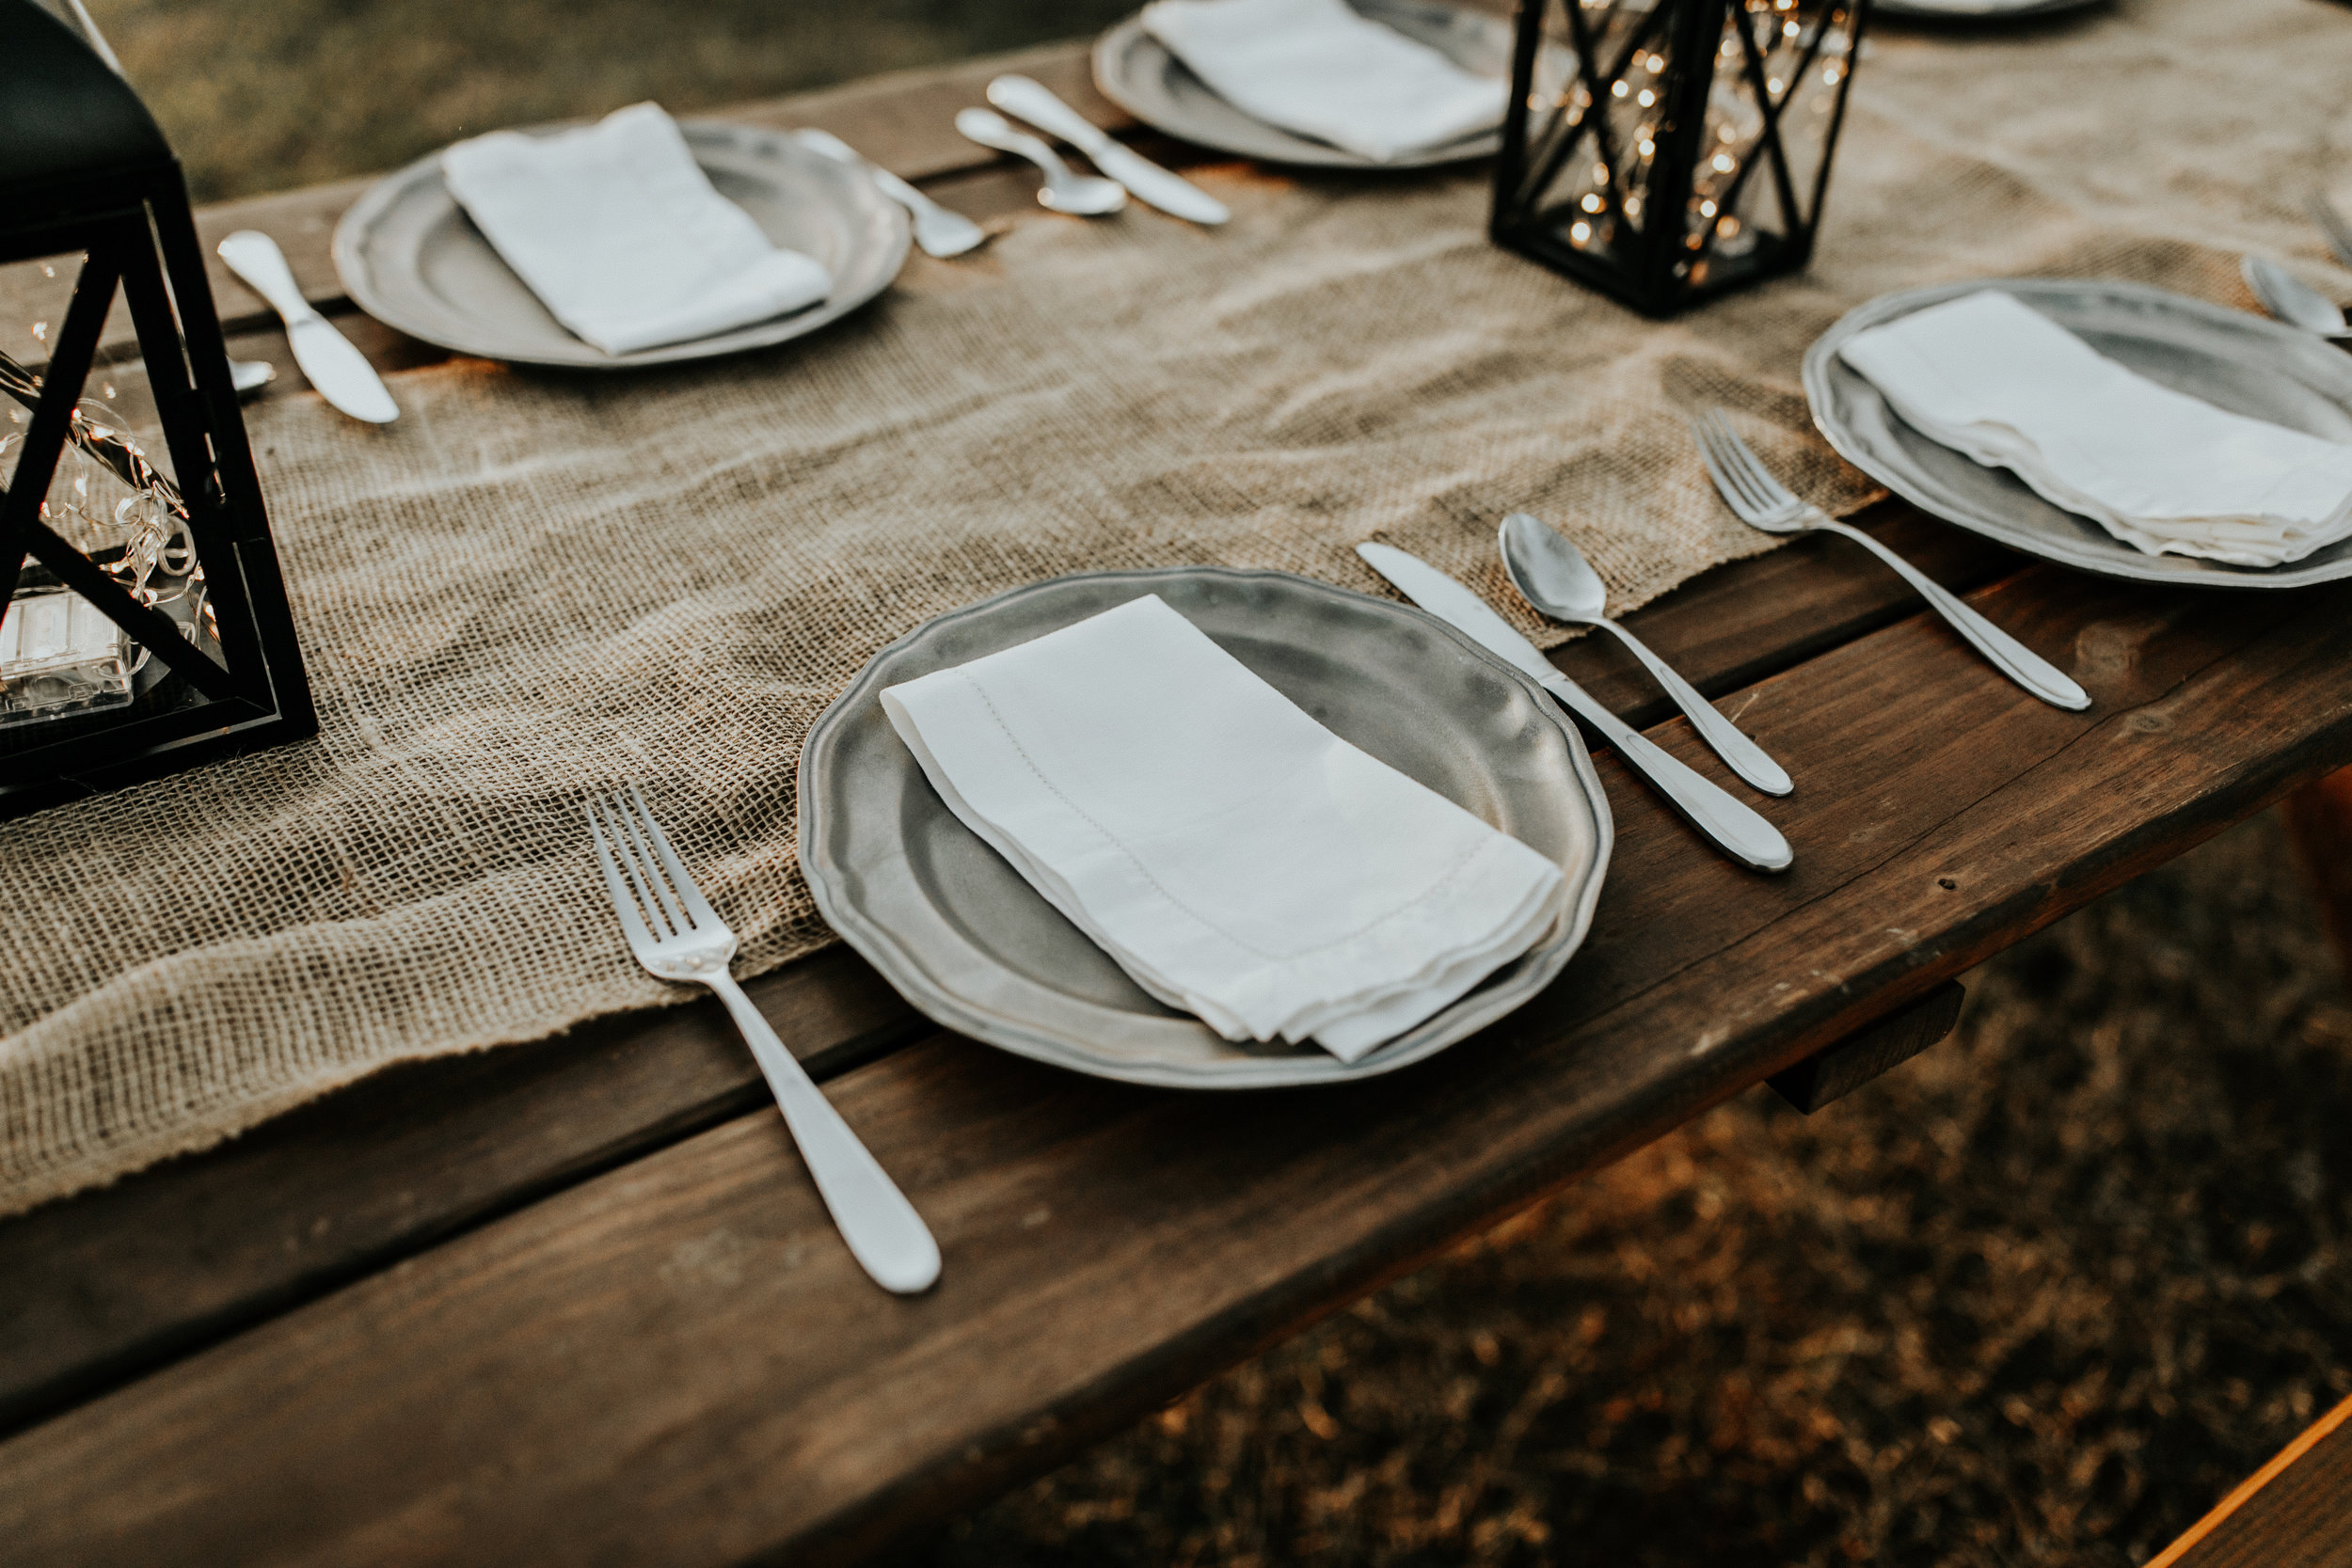 A place setting at a rustic table